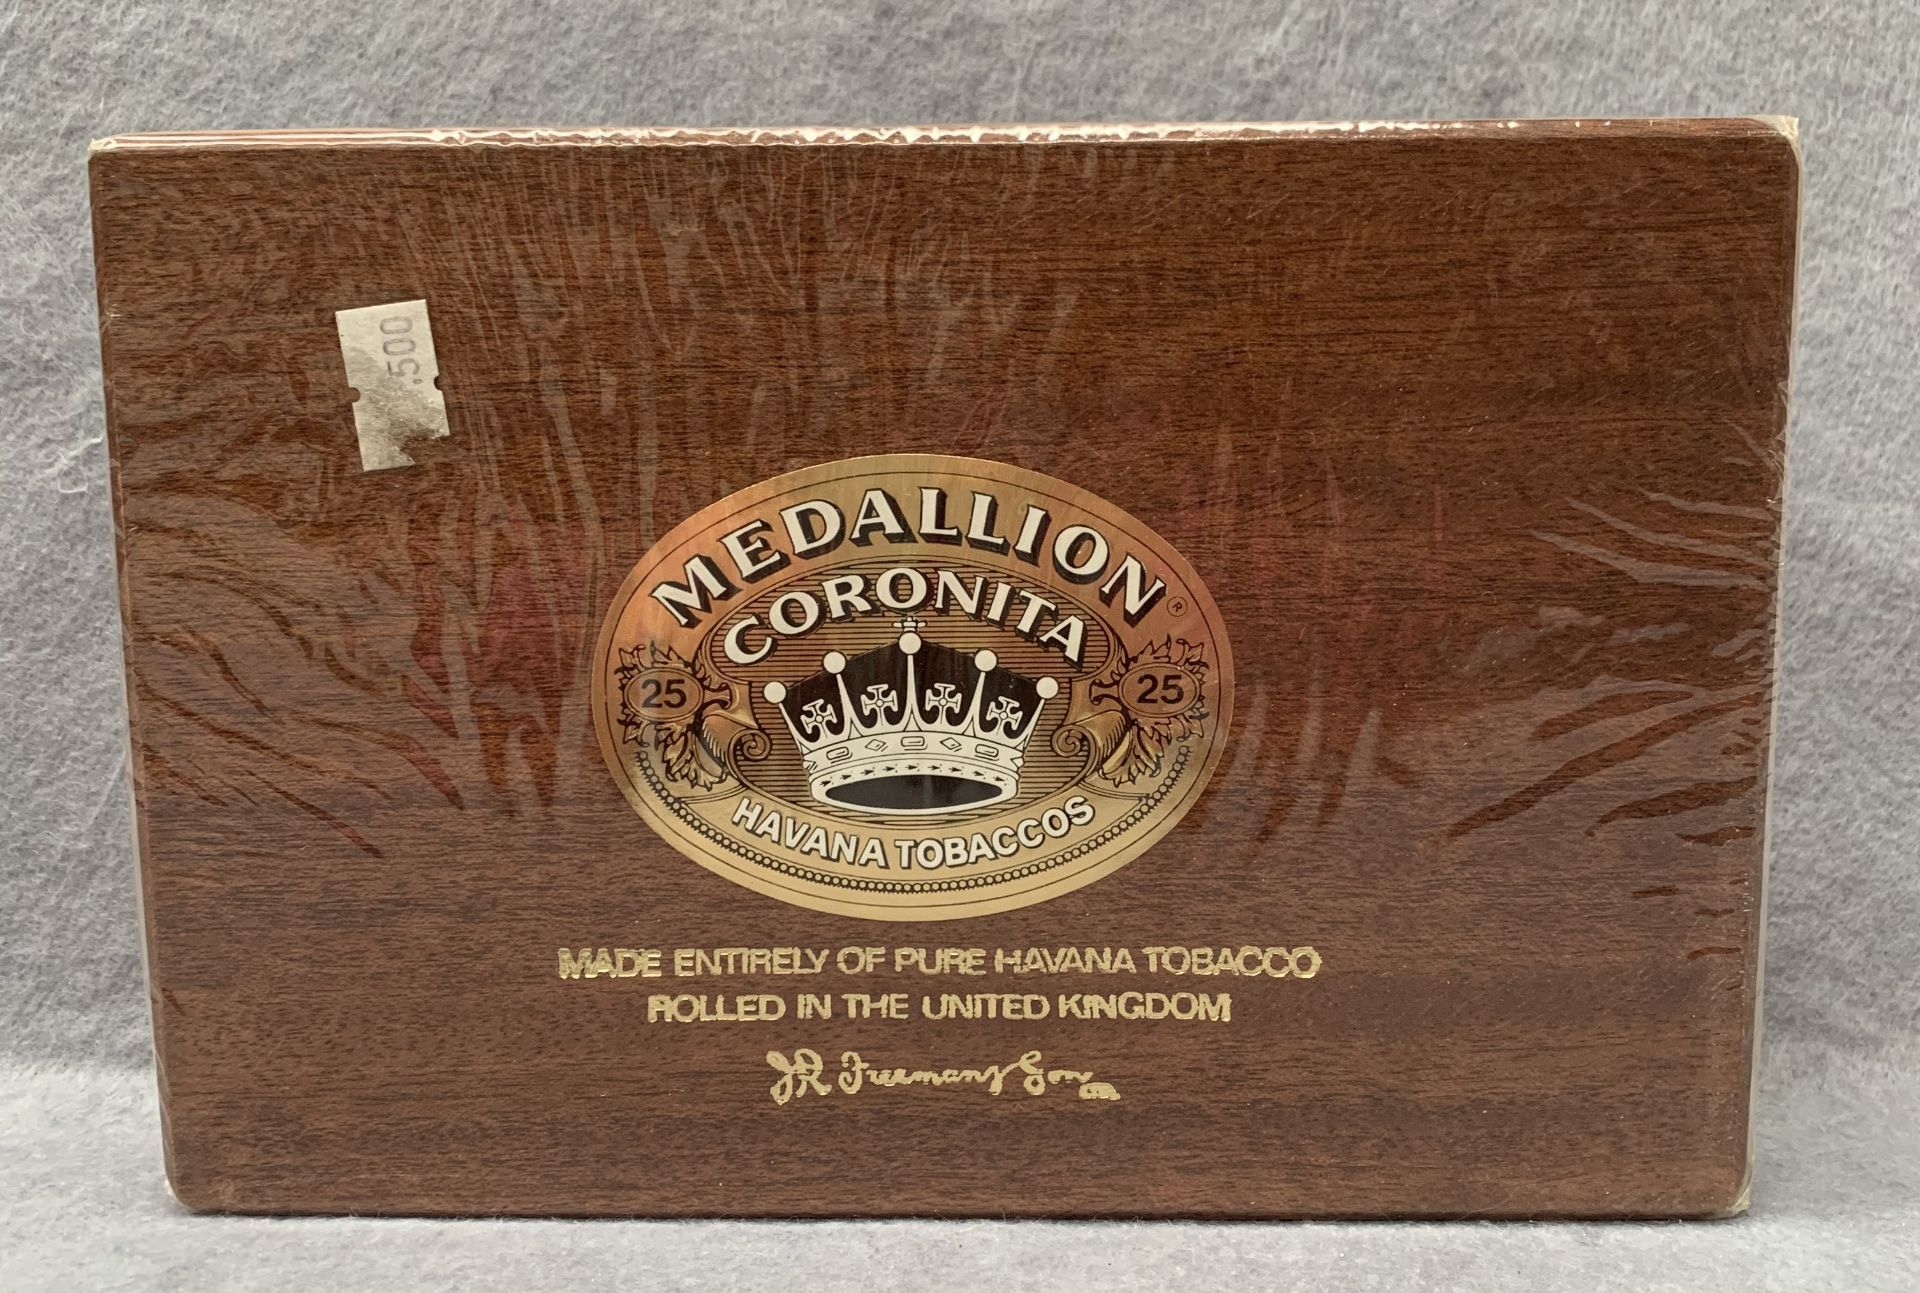 Lot 16 - A sealed box of 25 Medallion Coronita Havana Tobaccos cigars